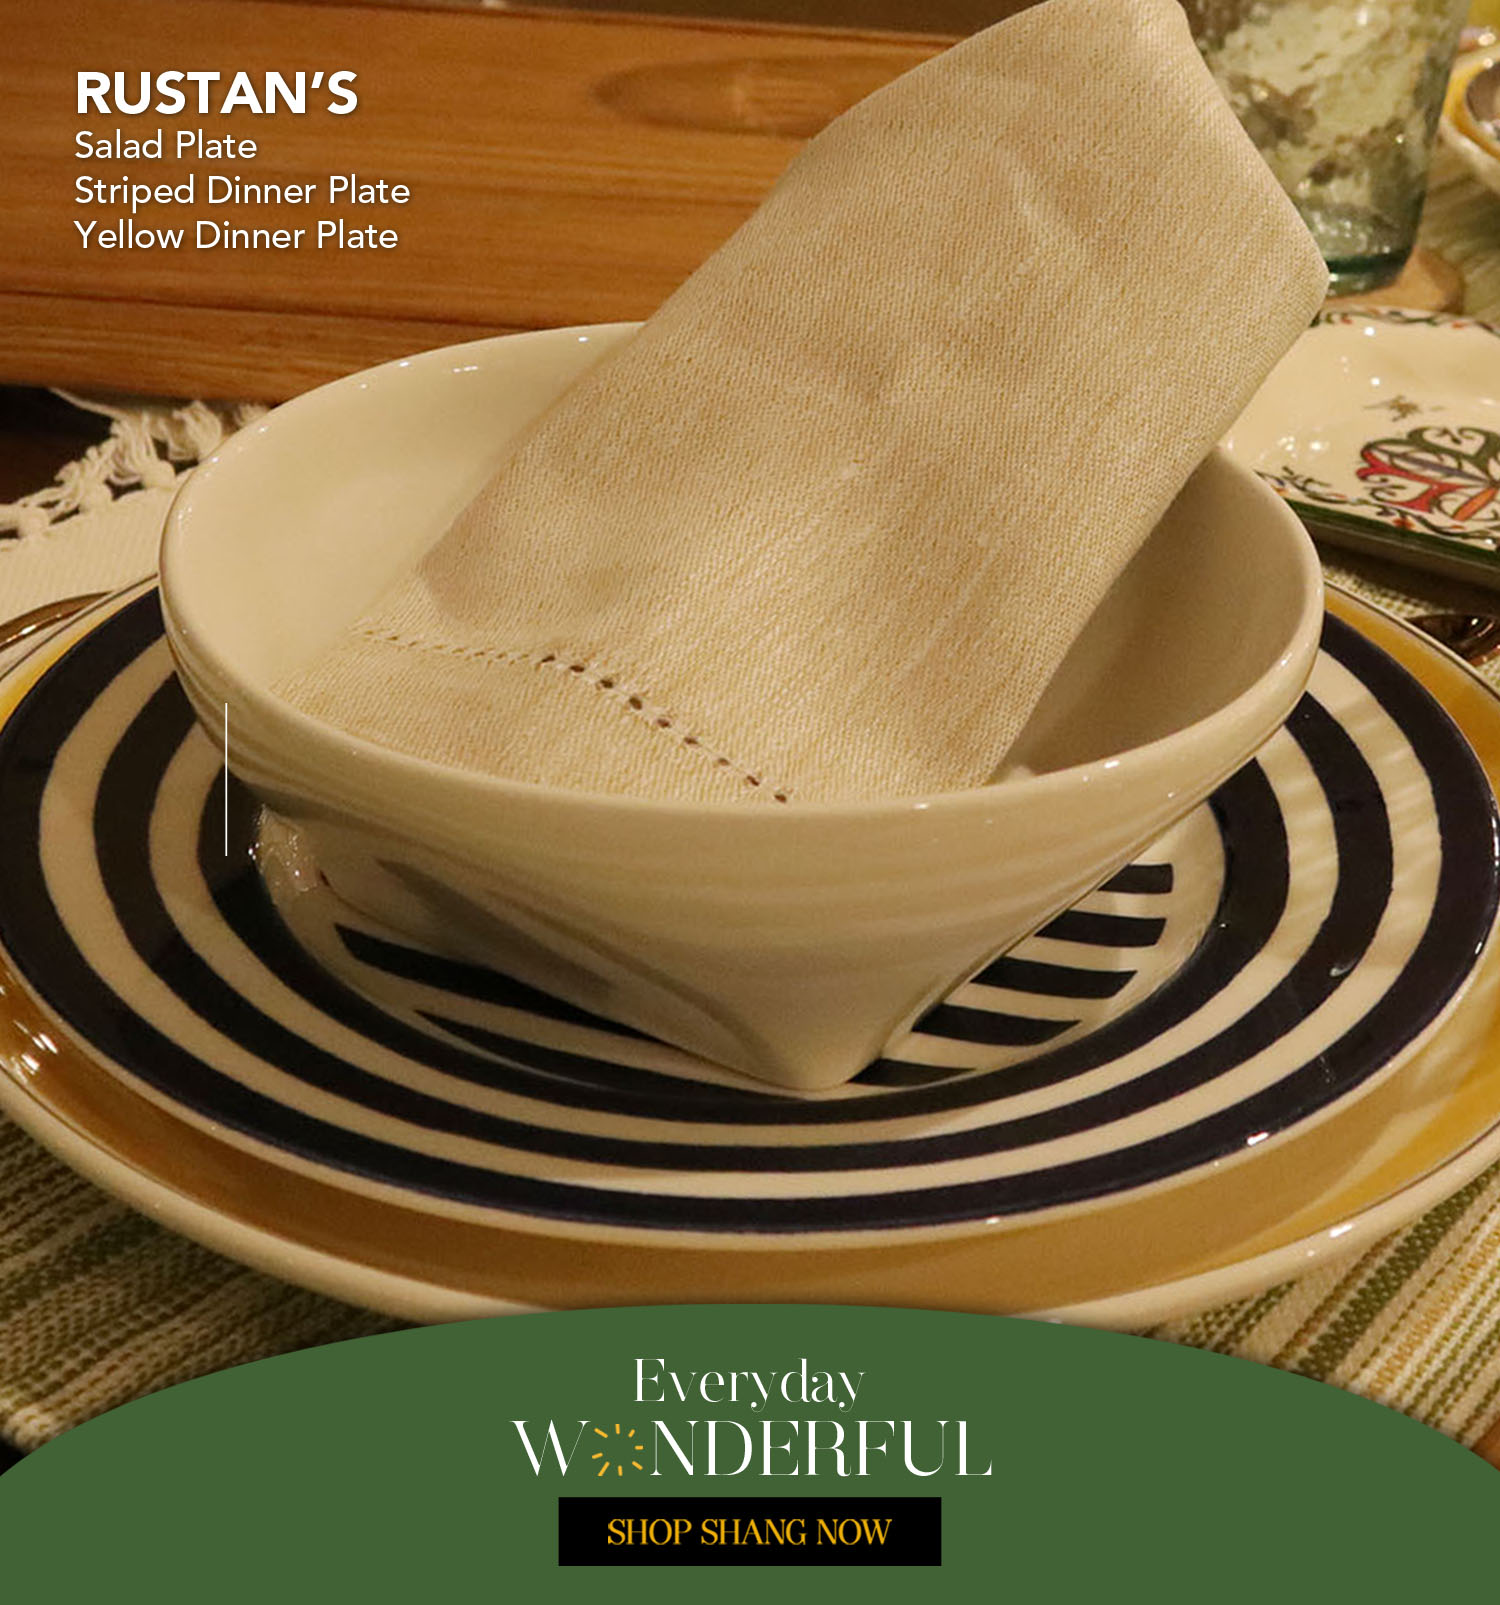 Salad Plate, Striped Dinner Plate & Yellow Dinner Plate from Rustan's